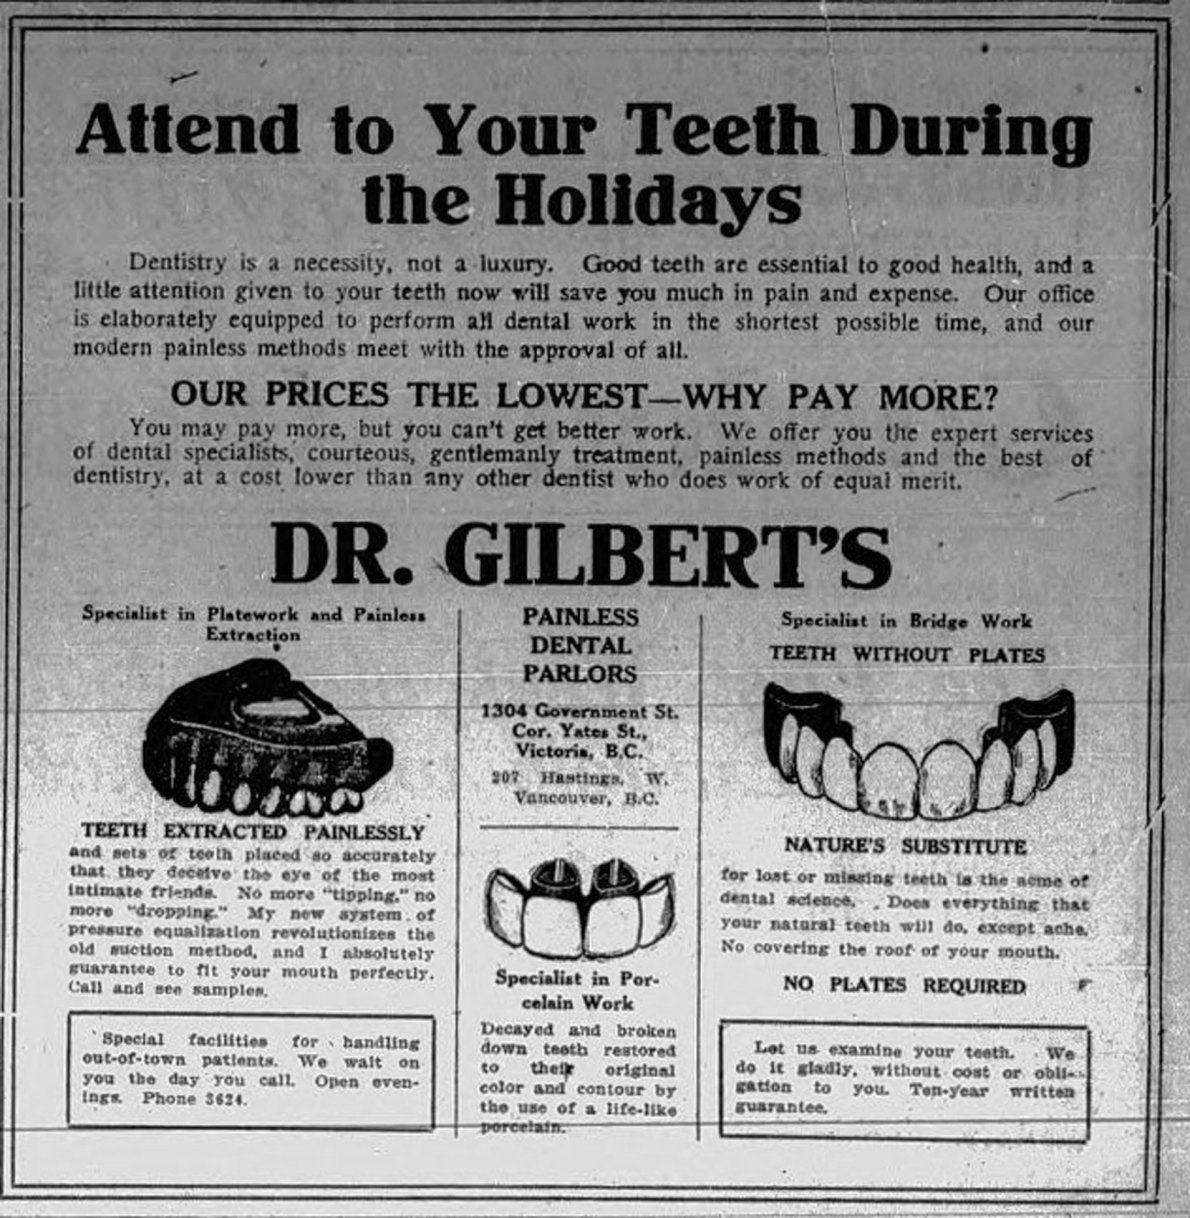 1915 Advertisement For Dr. Gilbert's Painless Dental Parlors, 1304 Douglas Street (Victoria Online Sightseeing Tours collection)